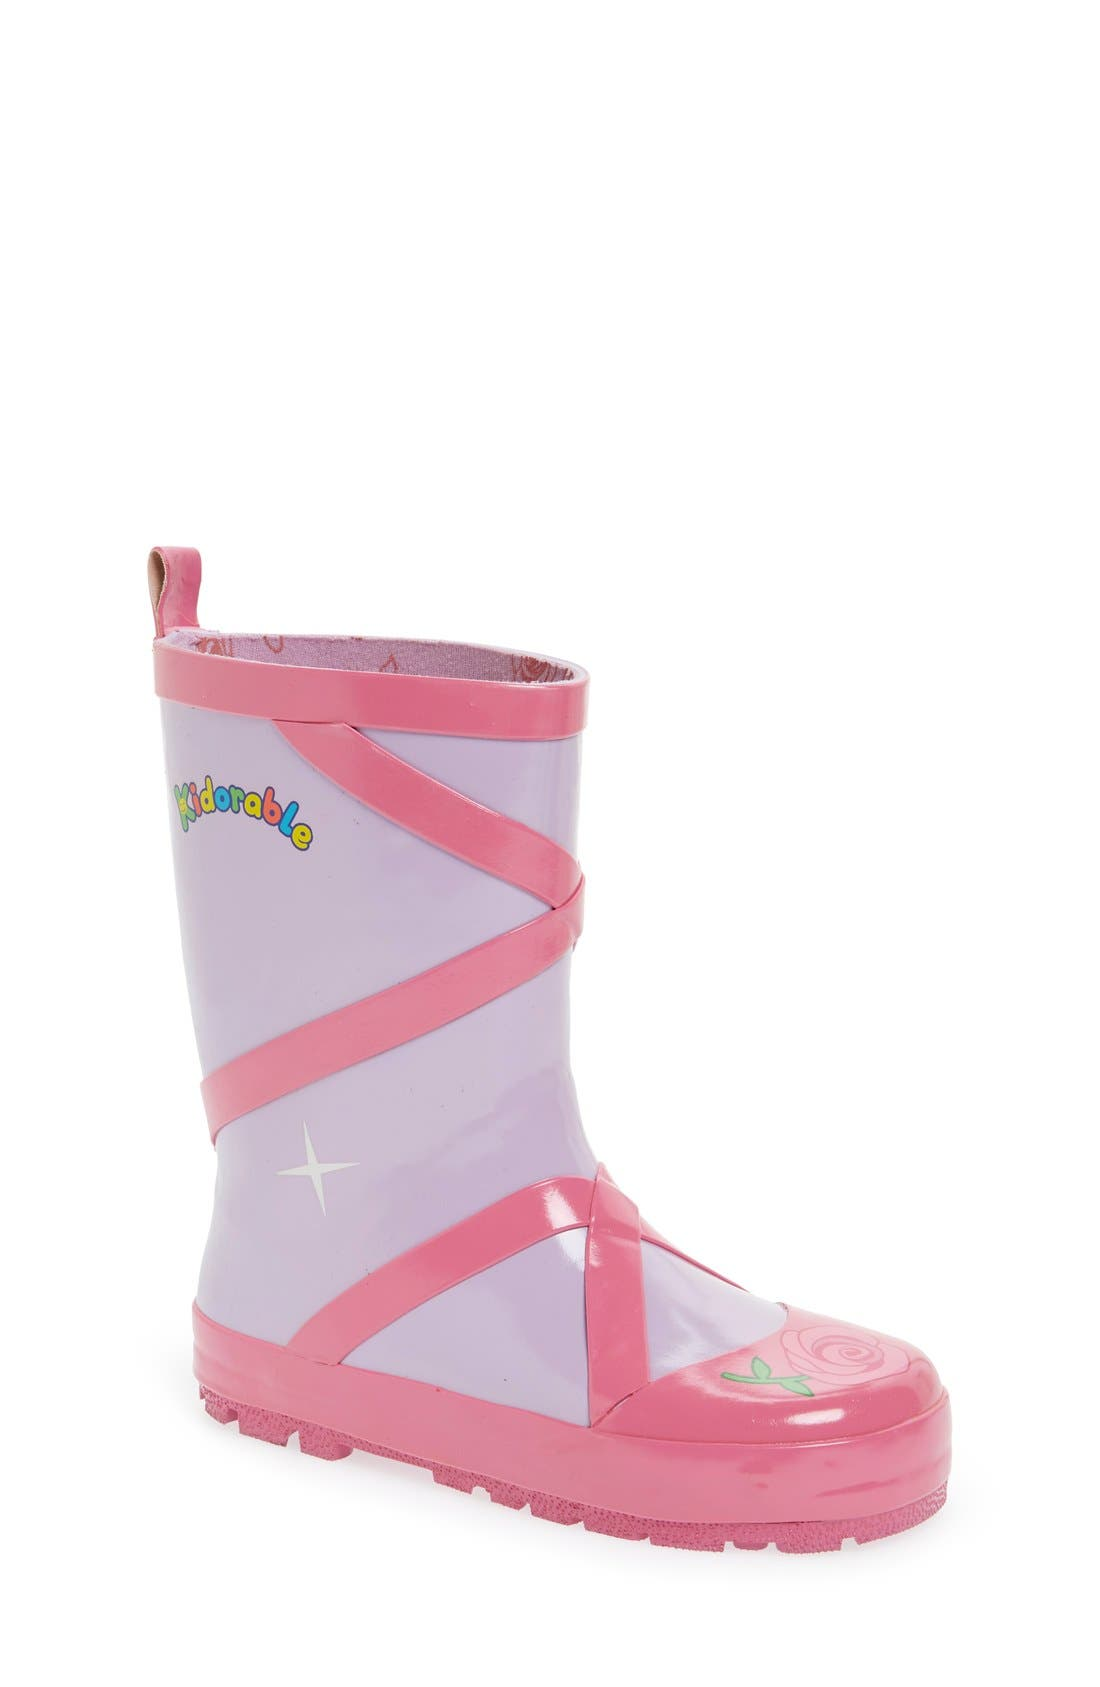 Alternate Image 1 Selected - Kidorable 'Ballerina' Waterproof Rain Boot (Walker, Toddler & Little Kid)